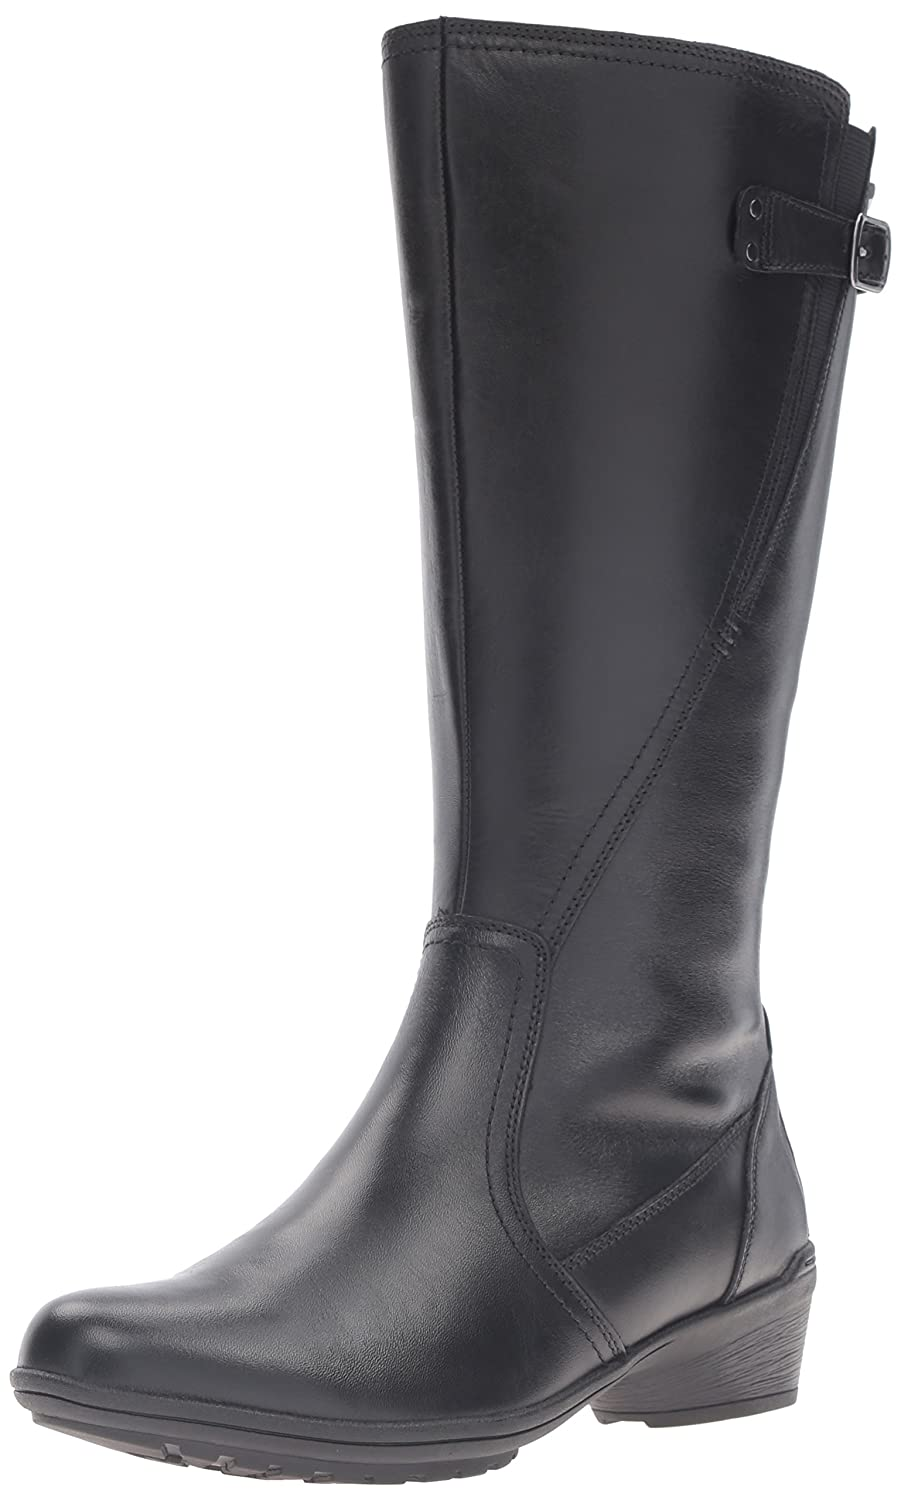 Cobb Hill Women's Rayna Wide Calf Rain Boot B01AKA78AE 8 W US|Black